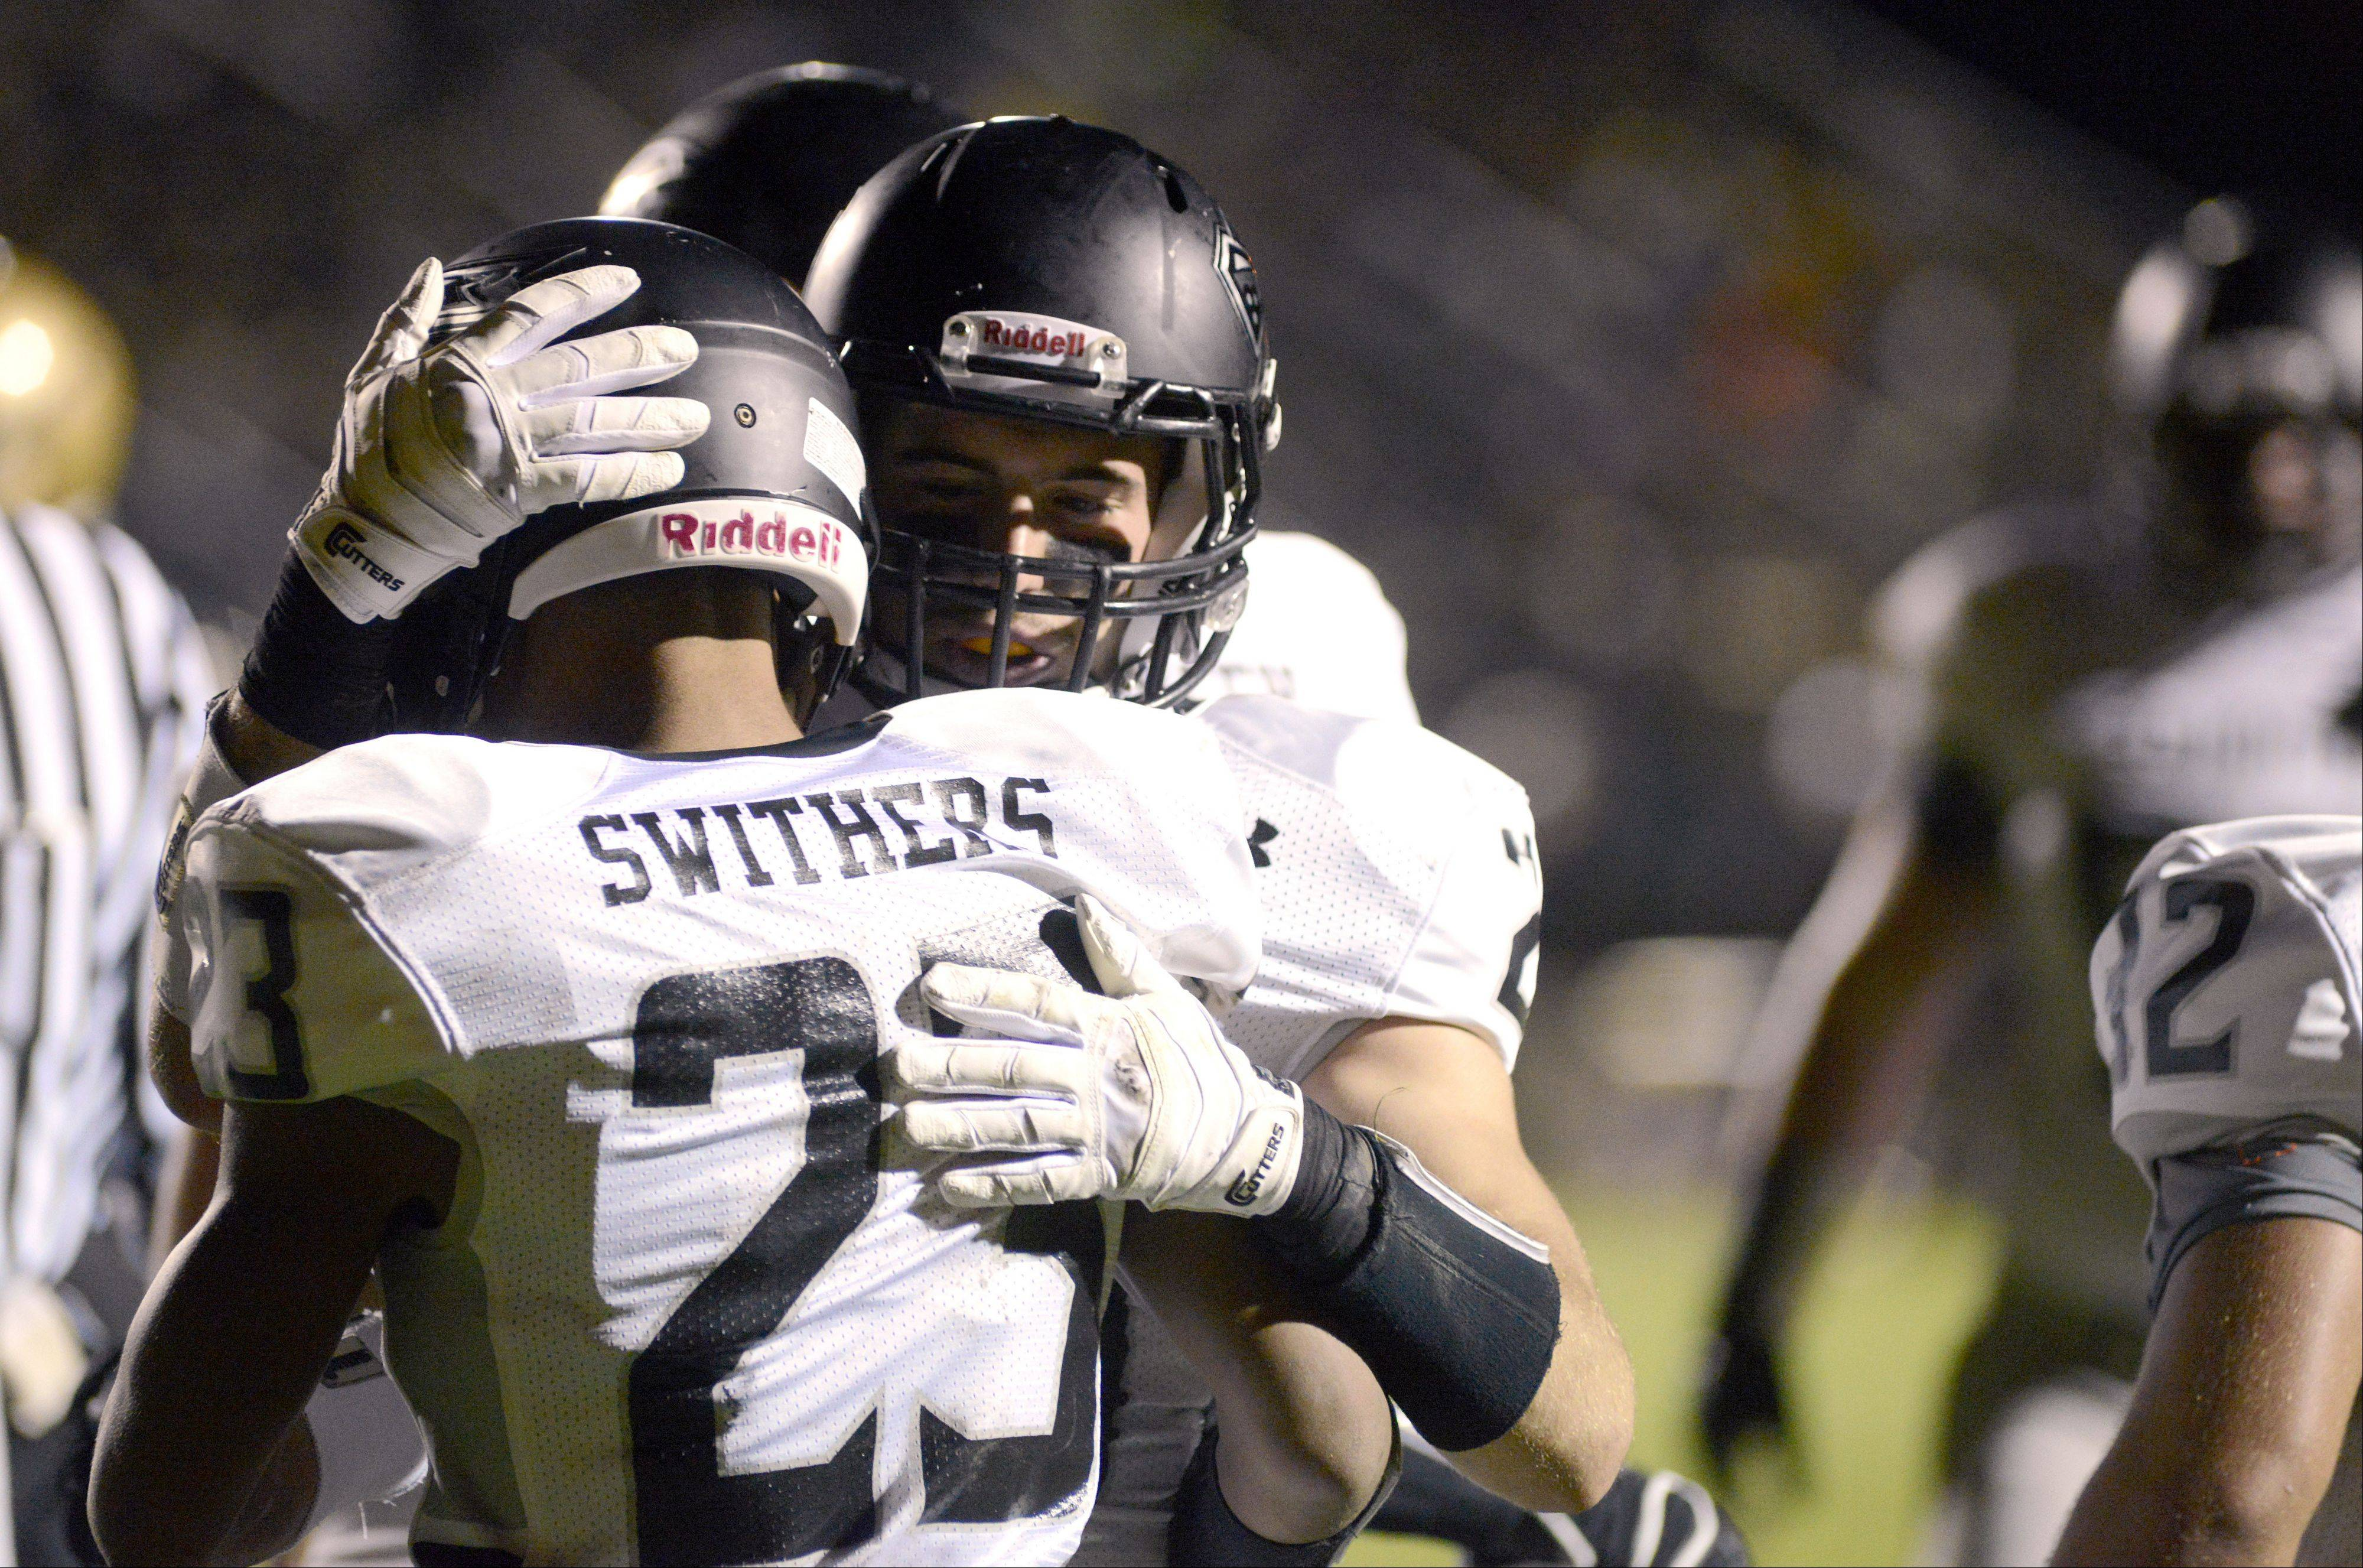 Kaneland's Isaac Swithers receives congratulations from teammate Dylan Nauert after scoring a touchdown.